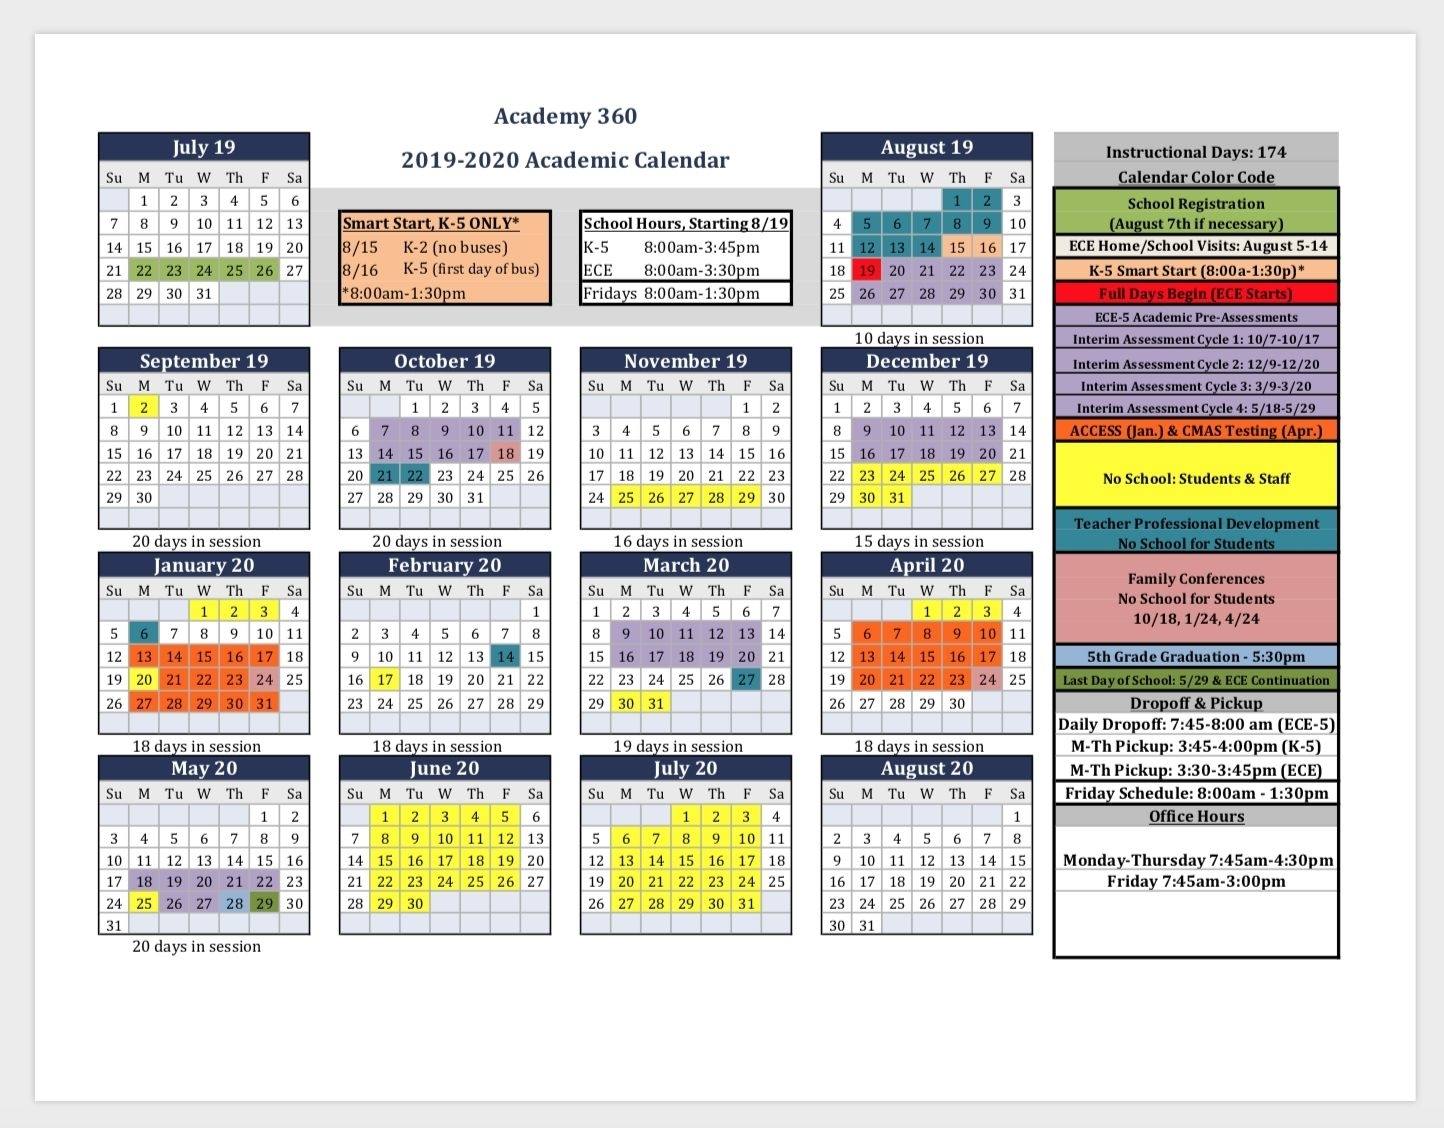 2020 Calendar With Special Days In 2020 | Special Day regarding Spec Ial Days In 2020